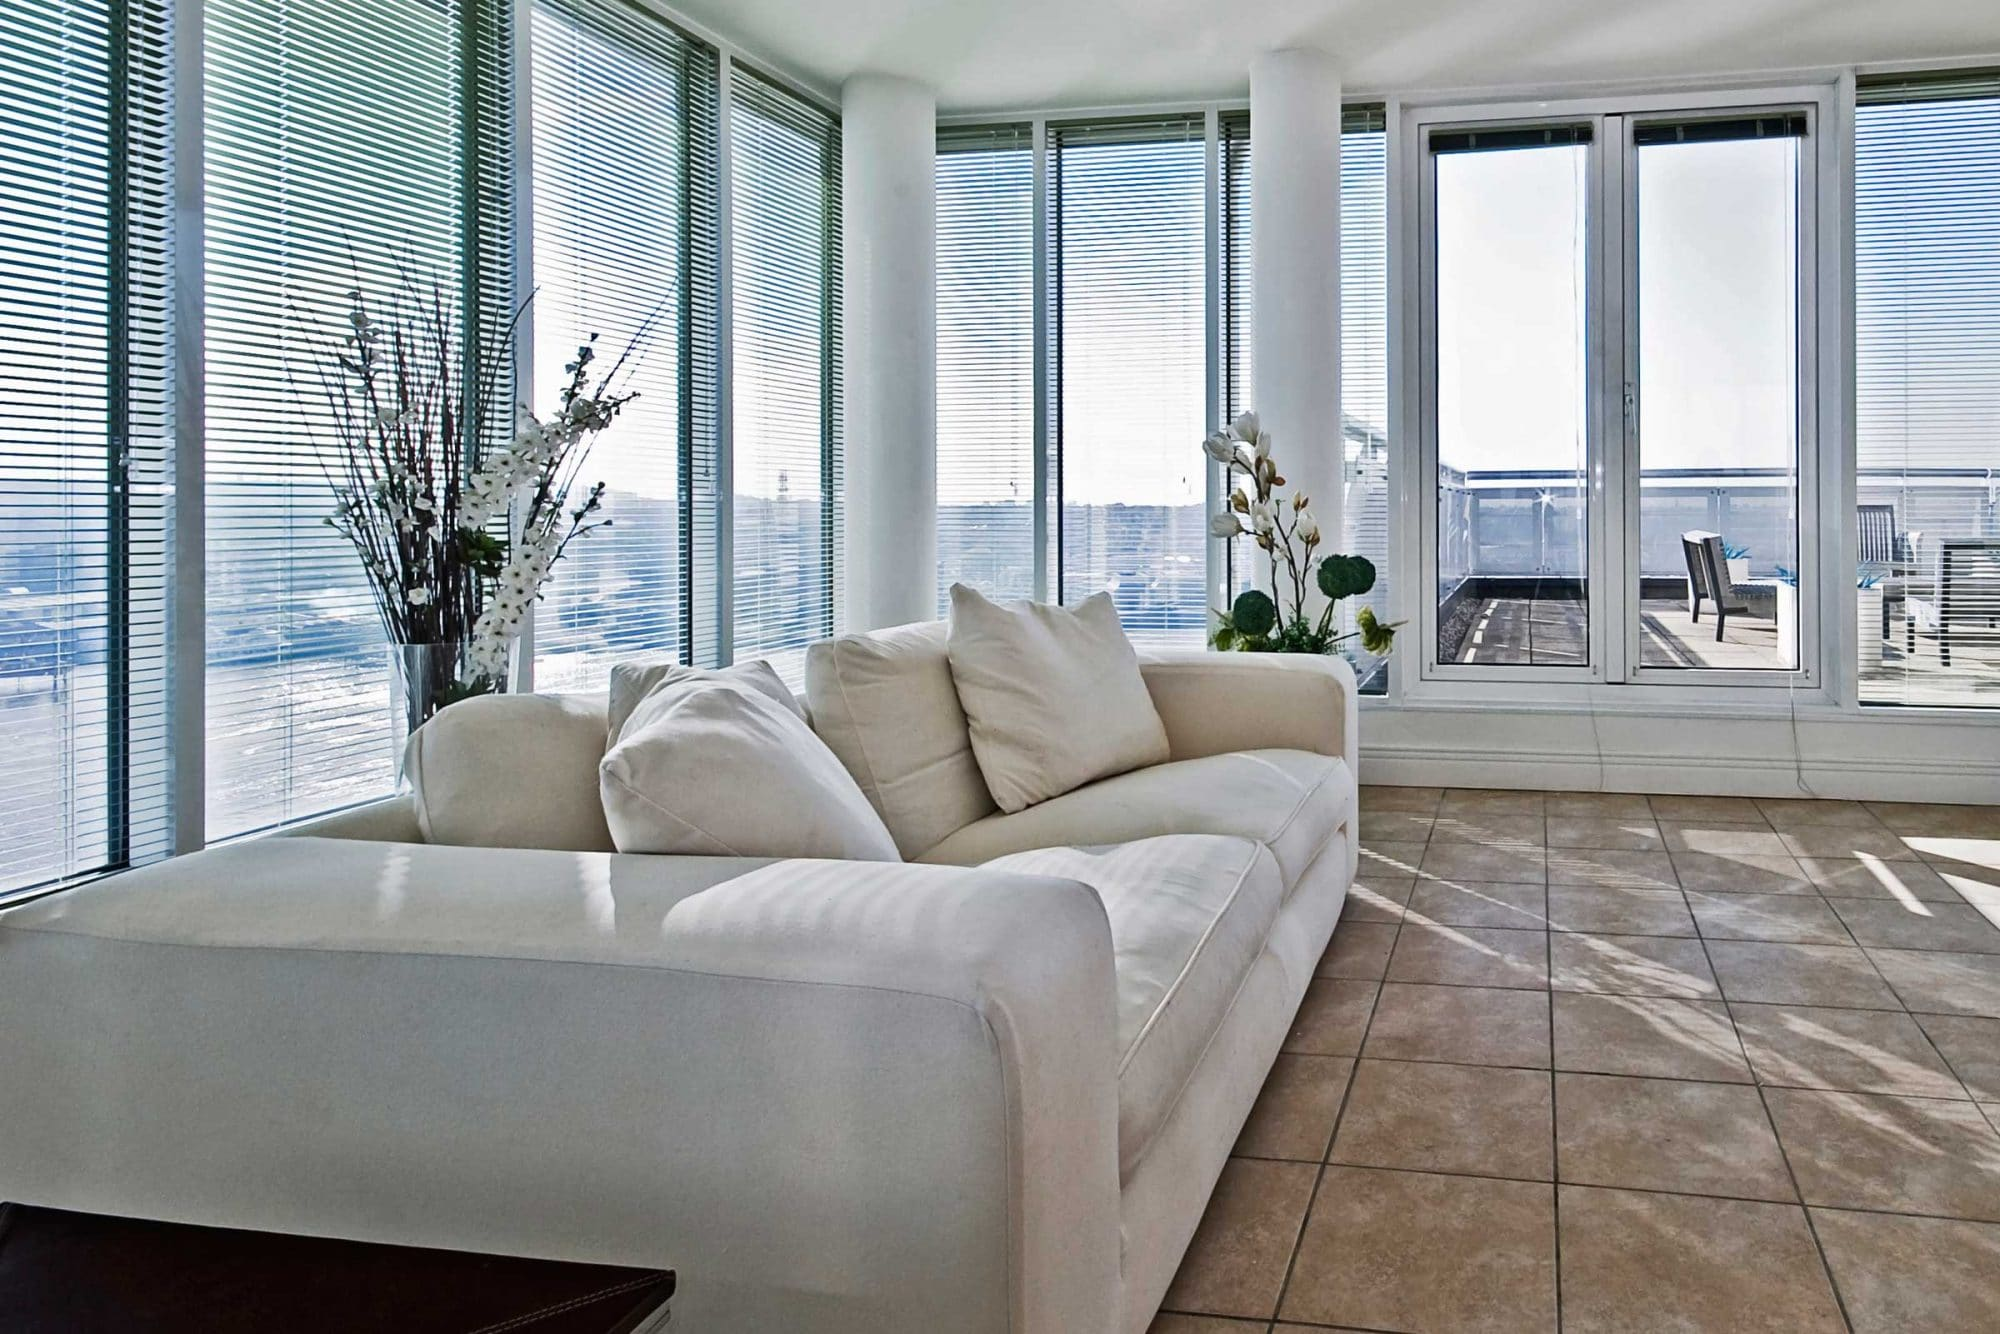 Do You Know How Home Value Is Affected By Windows & Doors